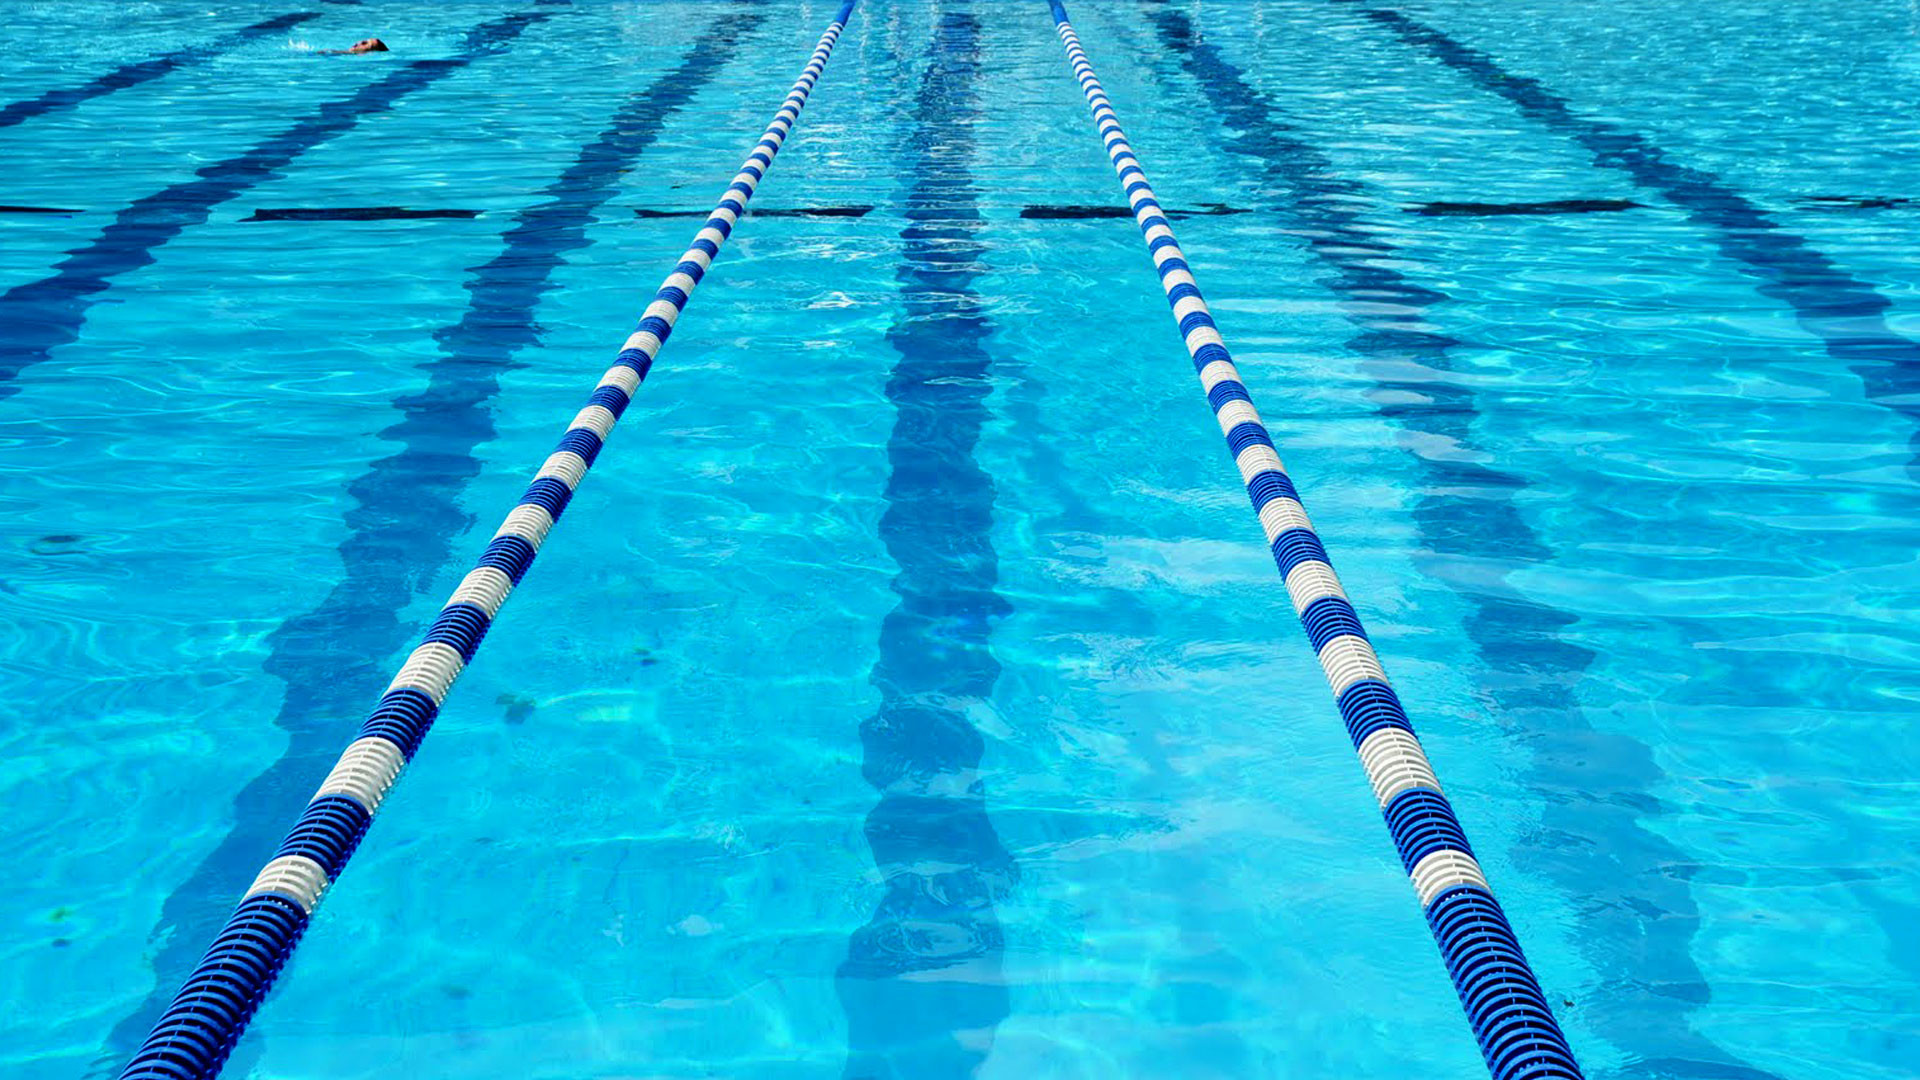 Swimming pool wallpaper 53 images for Swimming pool images